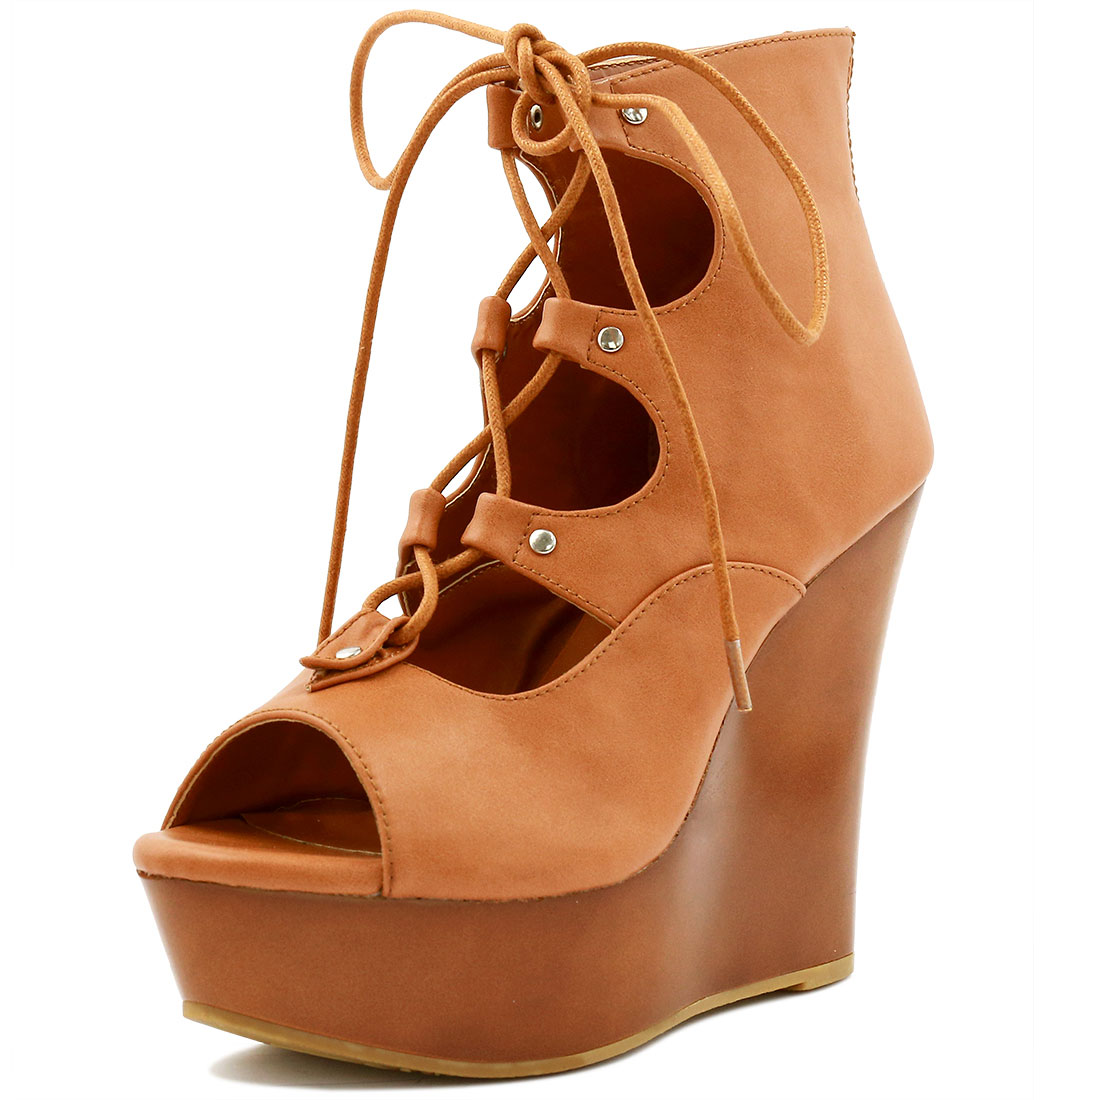 Woman Peep Toe Lace-Up Cutout Platform Wedge Sandals Brown US 7